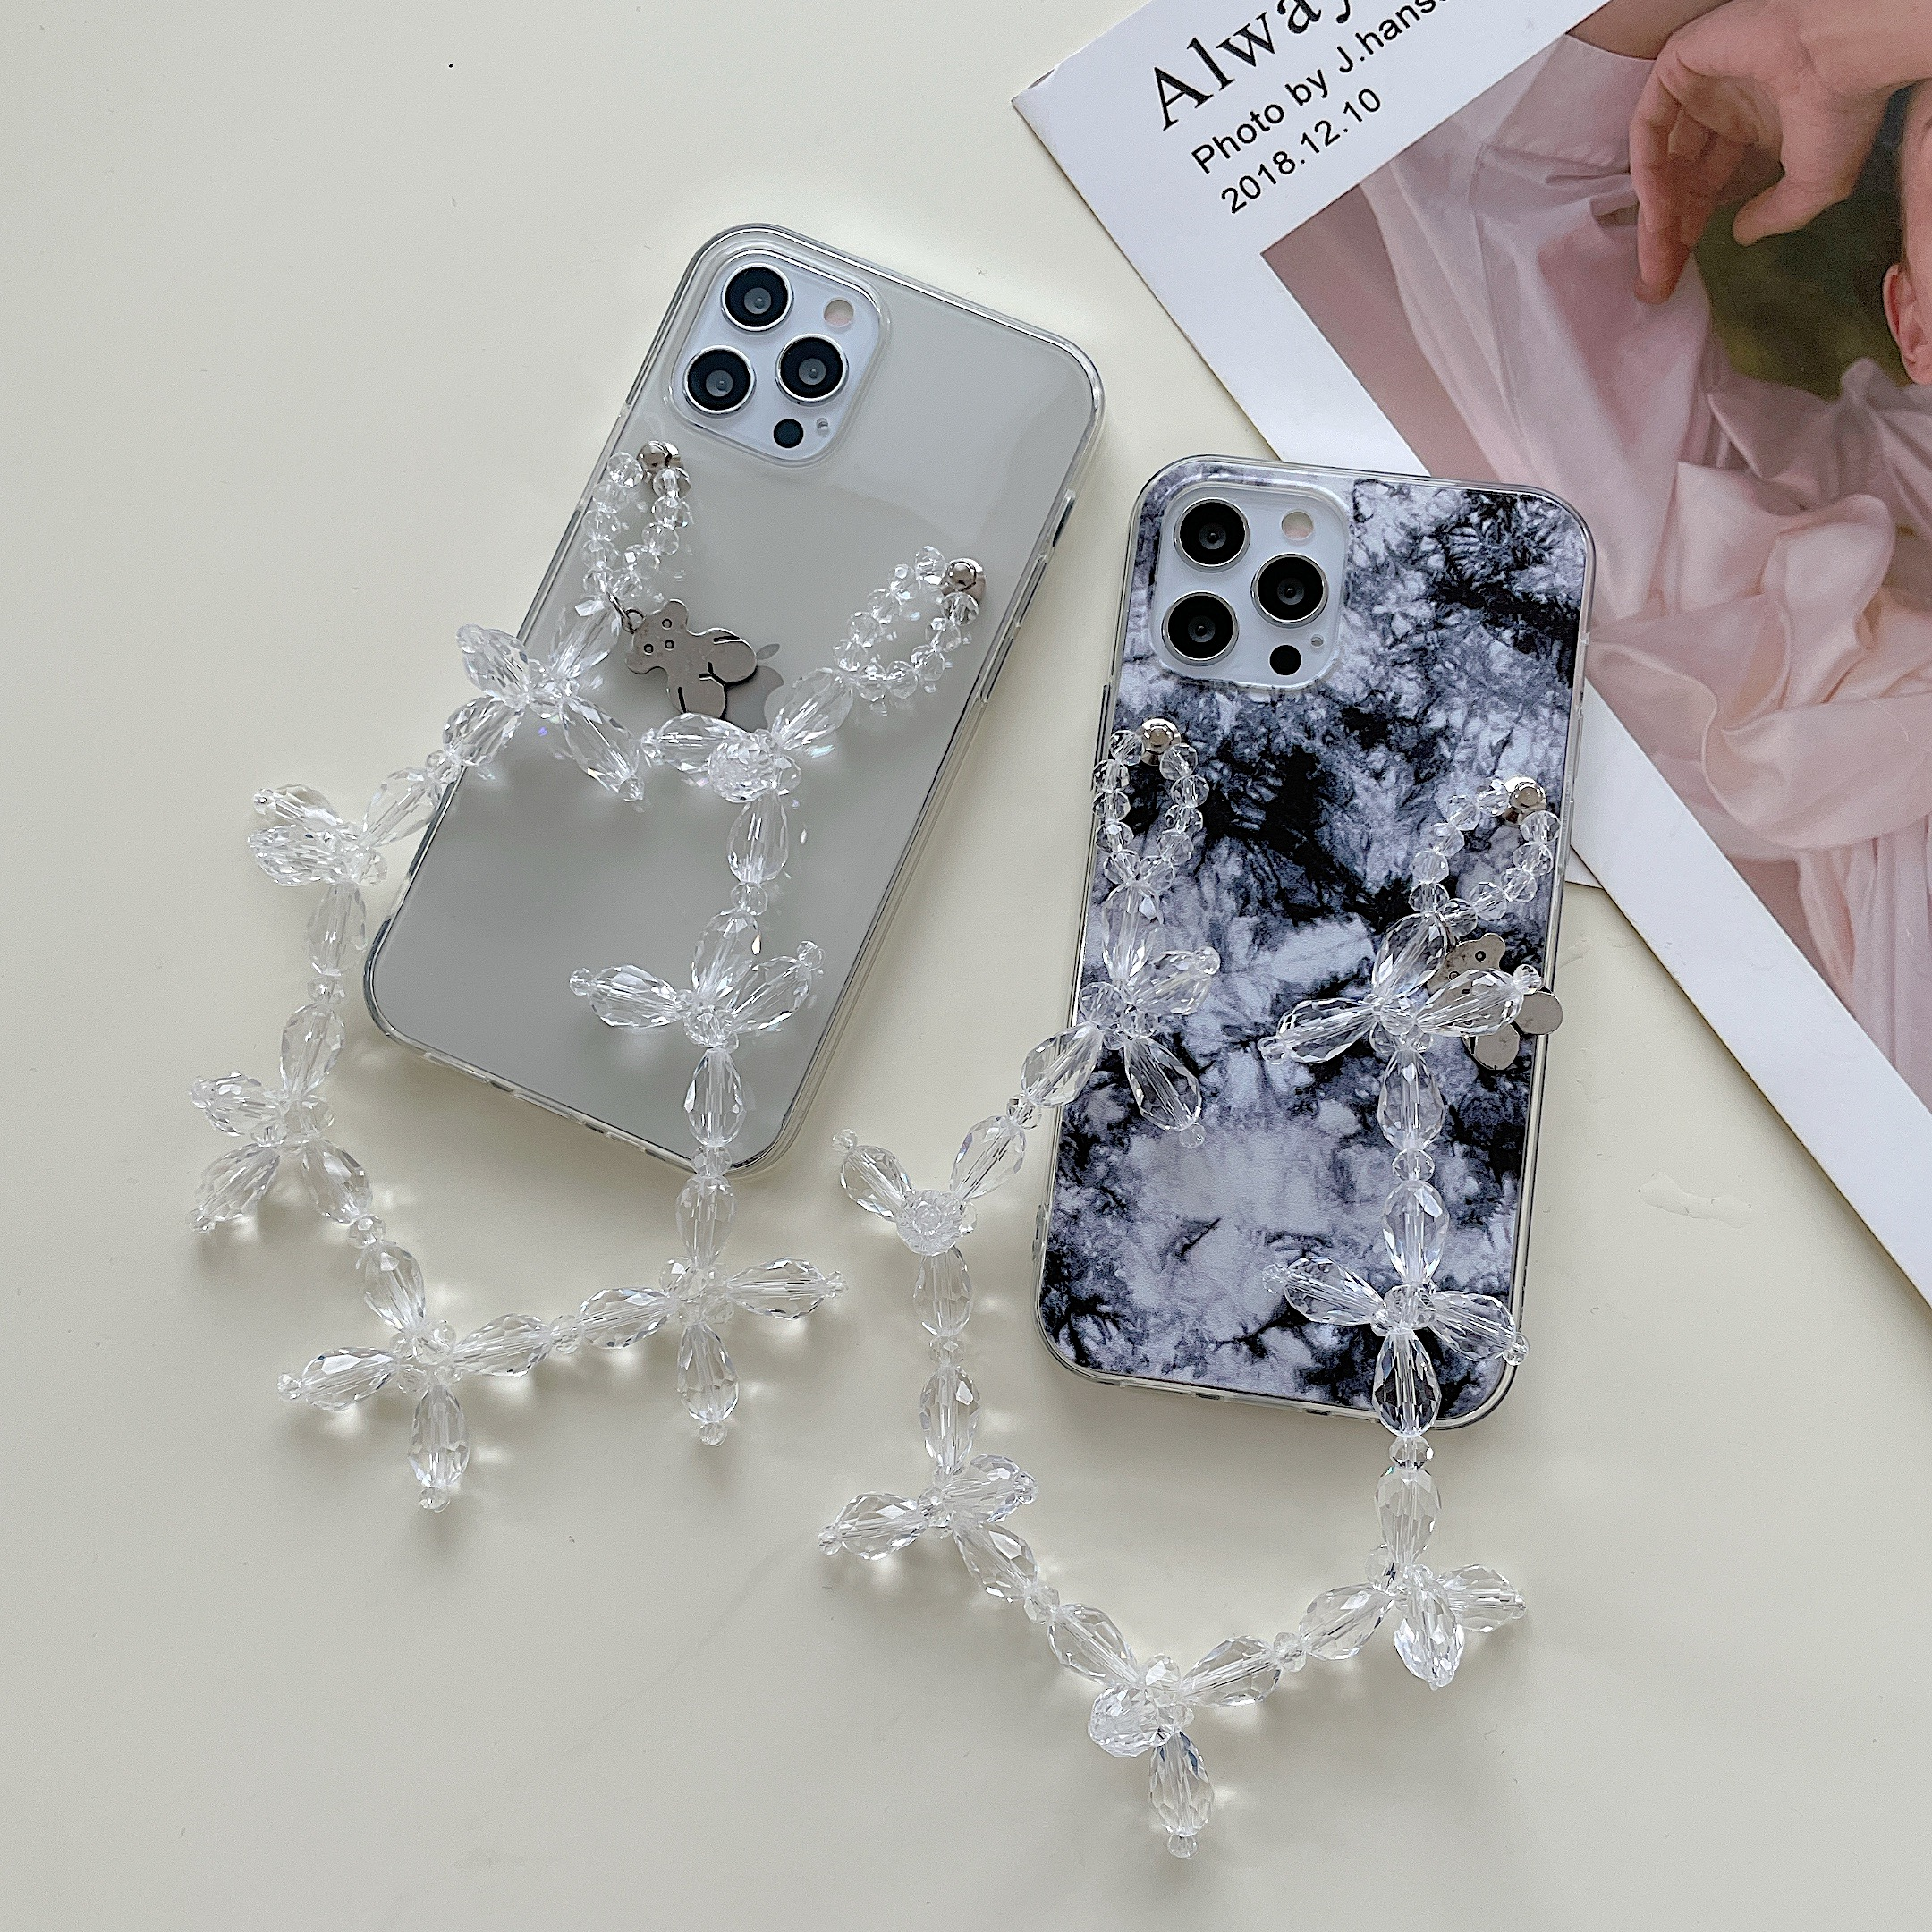 Bead Chain Ink Painting Transparent Soft Phone Case For iPhone 12 Pro Max MiNi 11 Pro Max X XR XS MAX 6 S 8 7 plus SE Cover